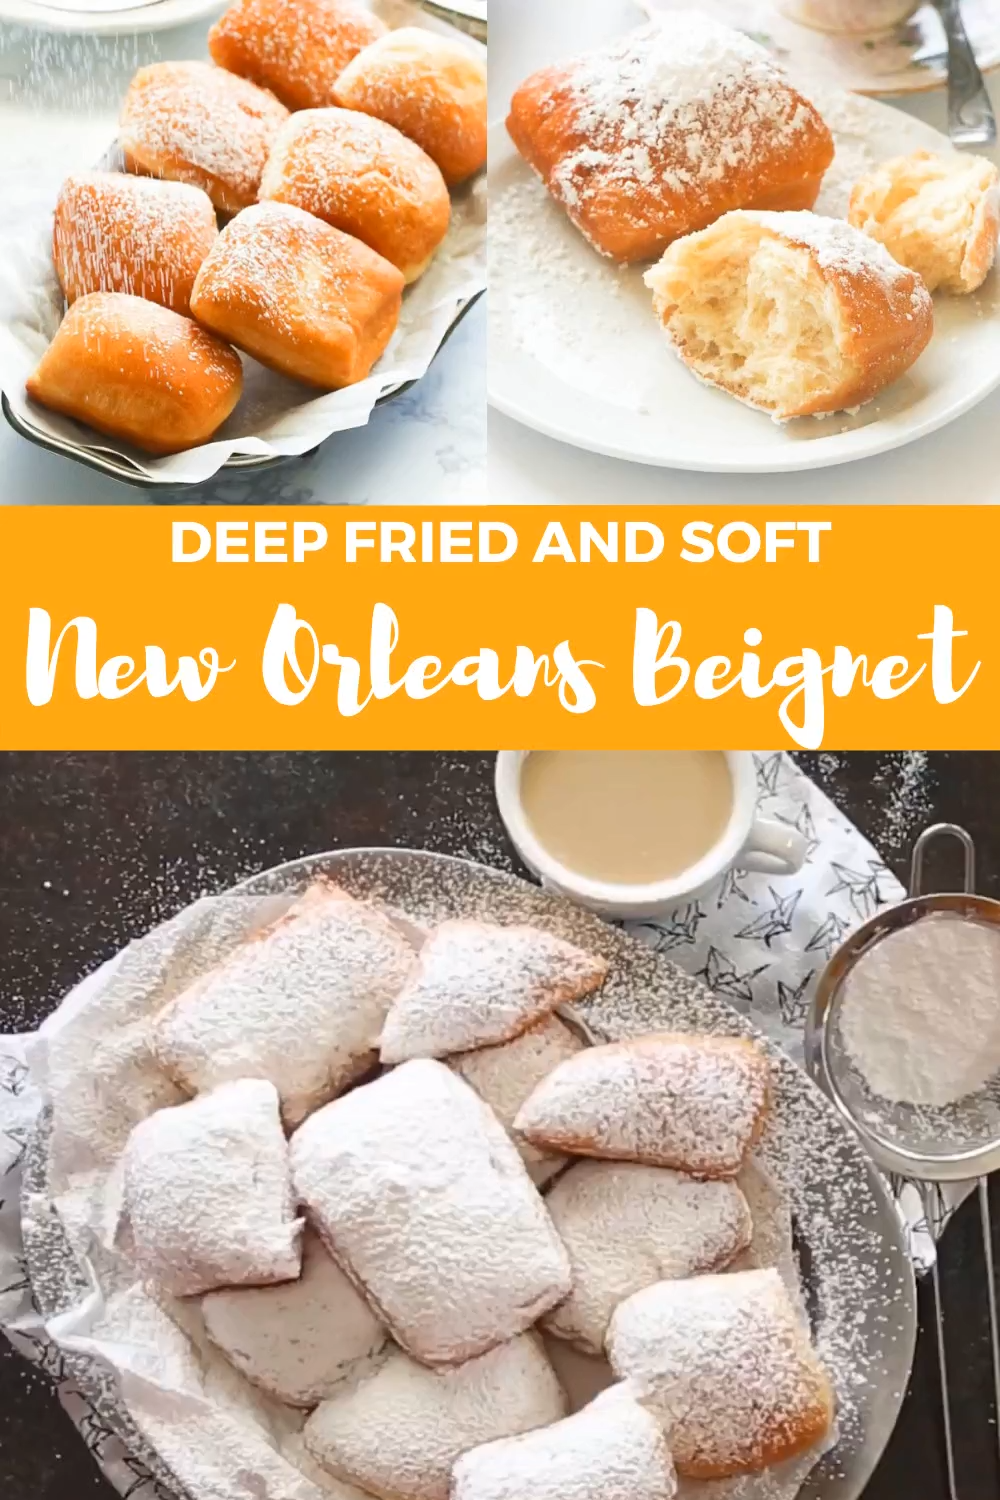 Beignets – These New Orleans doughnuts are the best! Soft, pillowy and light just like the ones eat at Cafe du Monde but taste even better! You can't beat homemade.